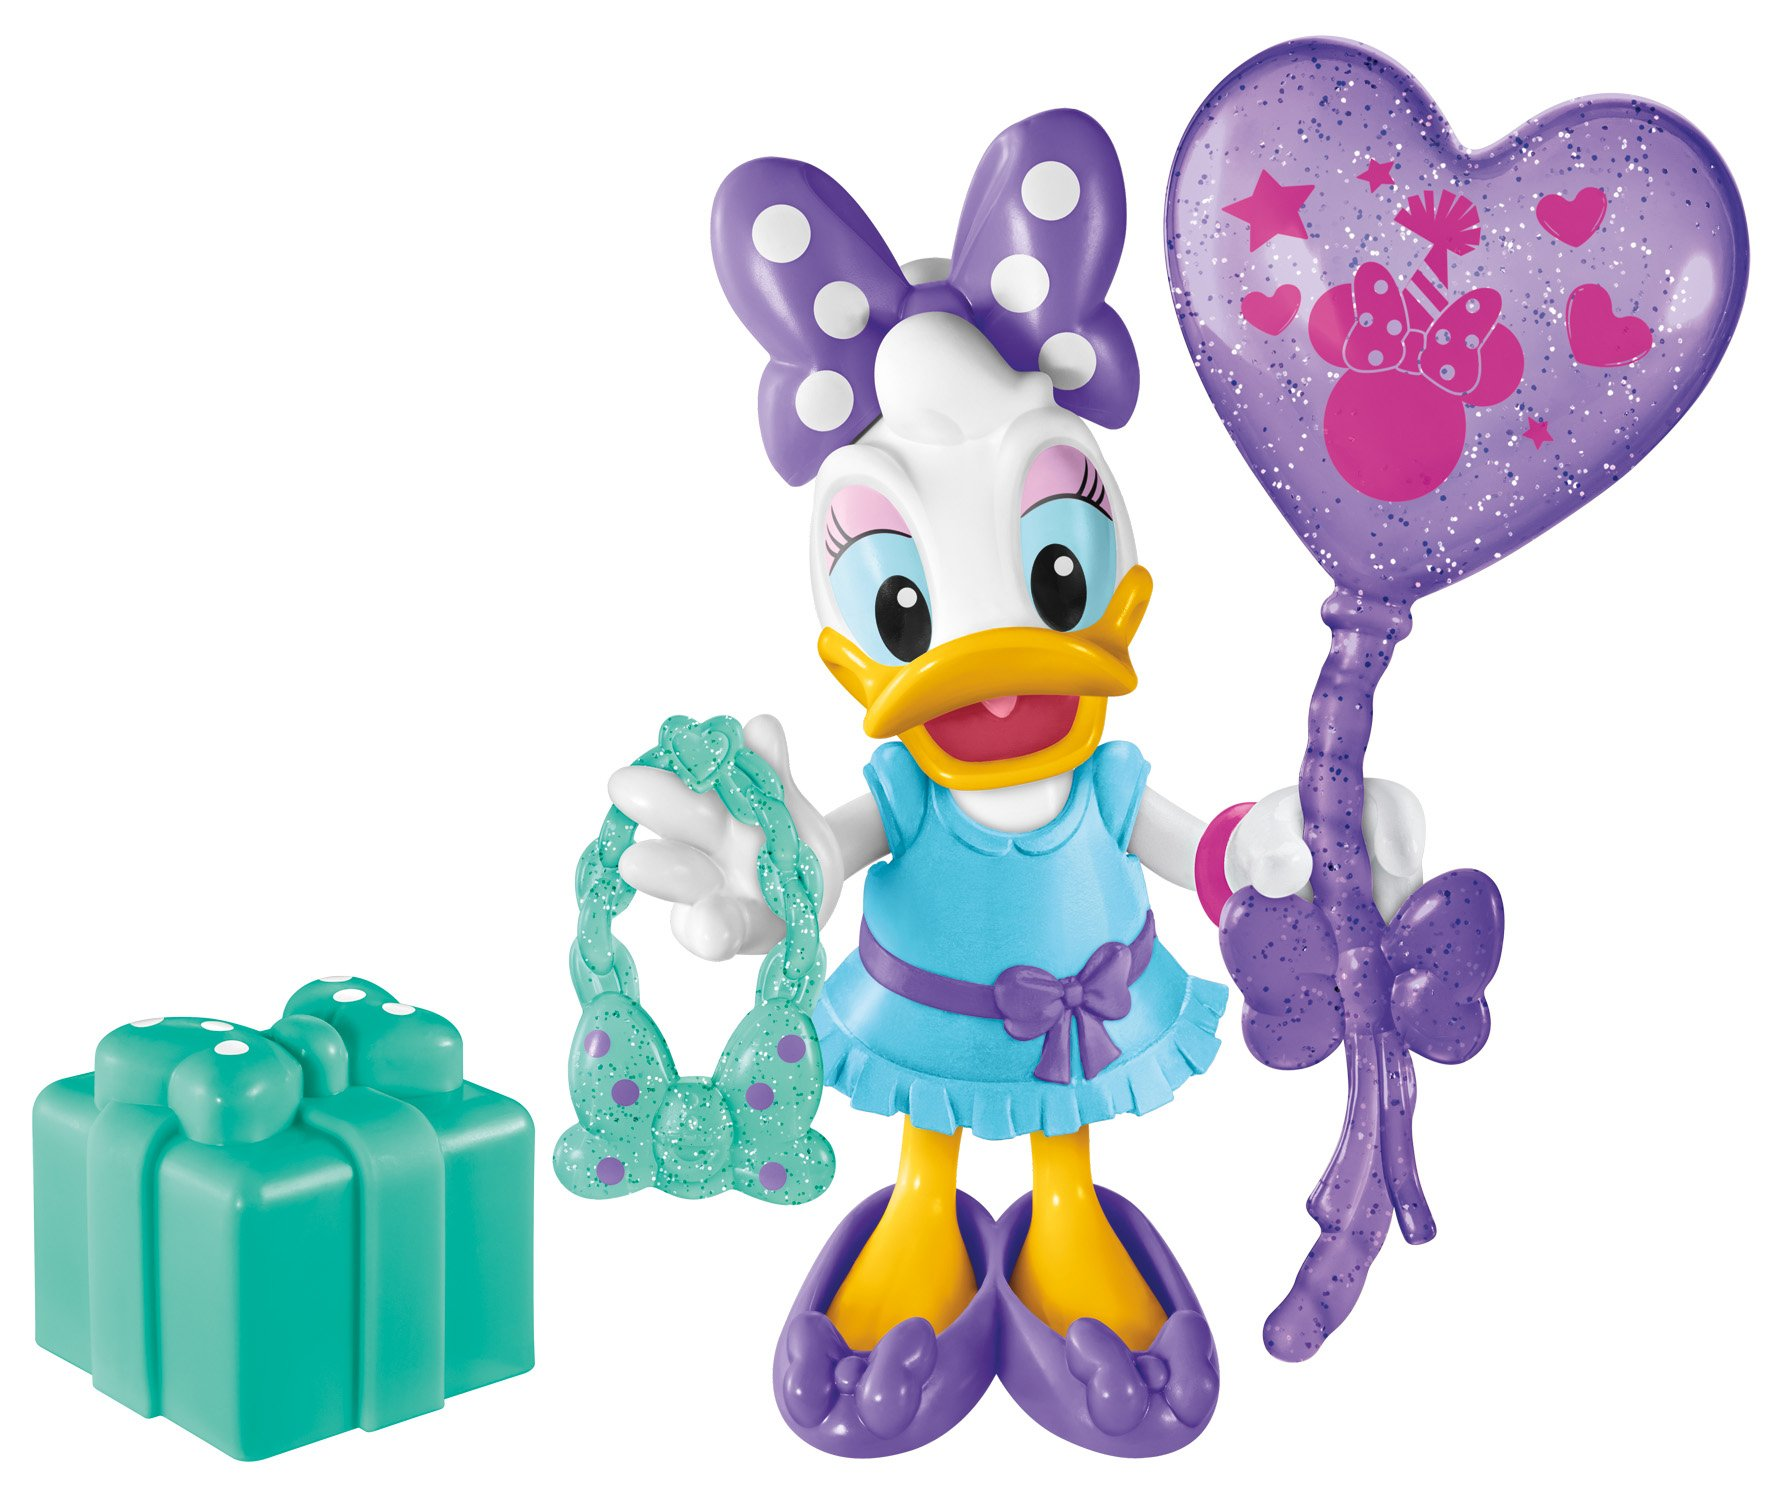 Little People Fisher Price World Disney Daisy Duck Loose//Repackaged Replacement Figure